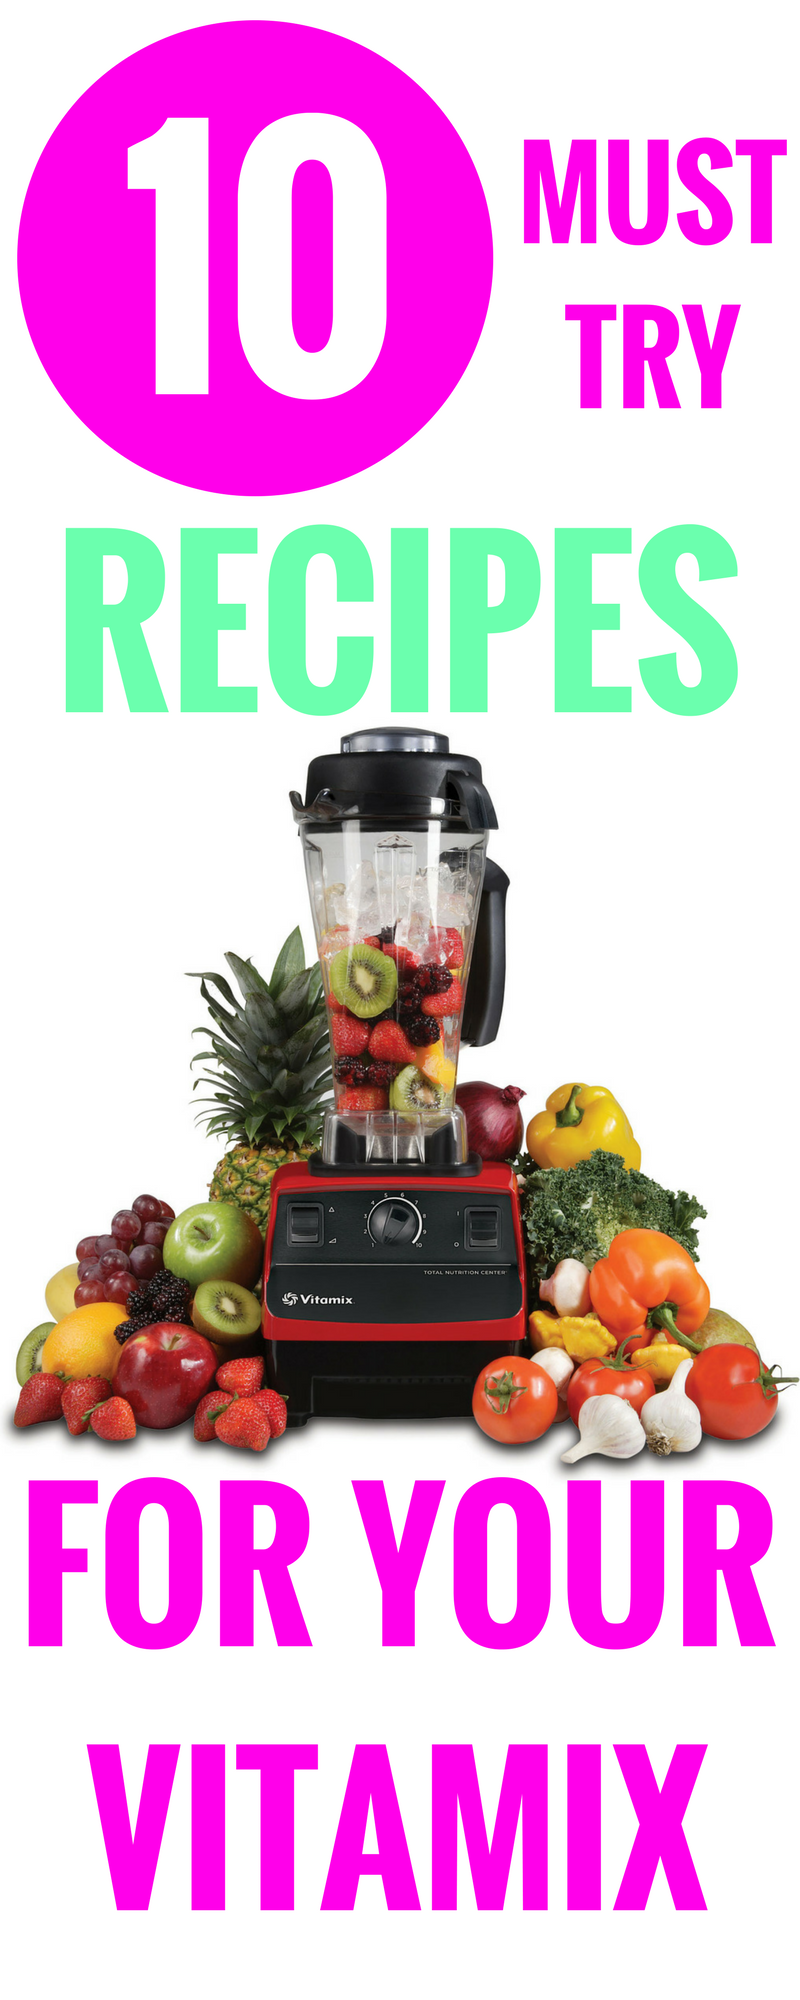 10 must try recipes for your vitamix communikait 10 must try recipes for your vitamix vitamix recipes recipe ideas blender recipes forumfinder Choice Image